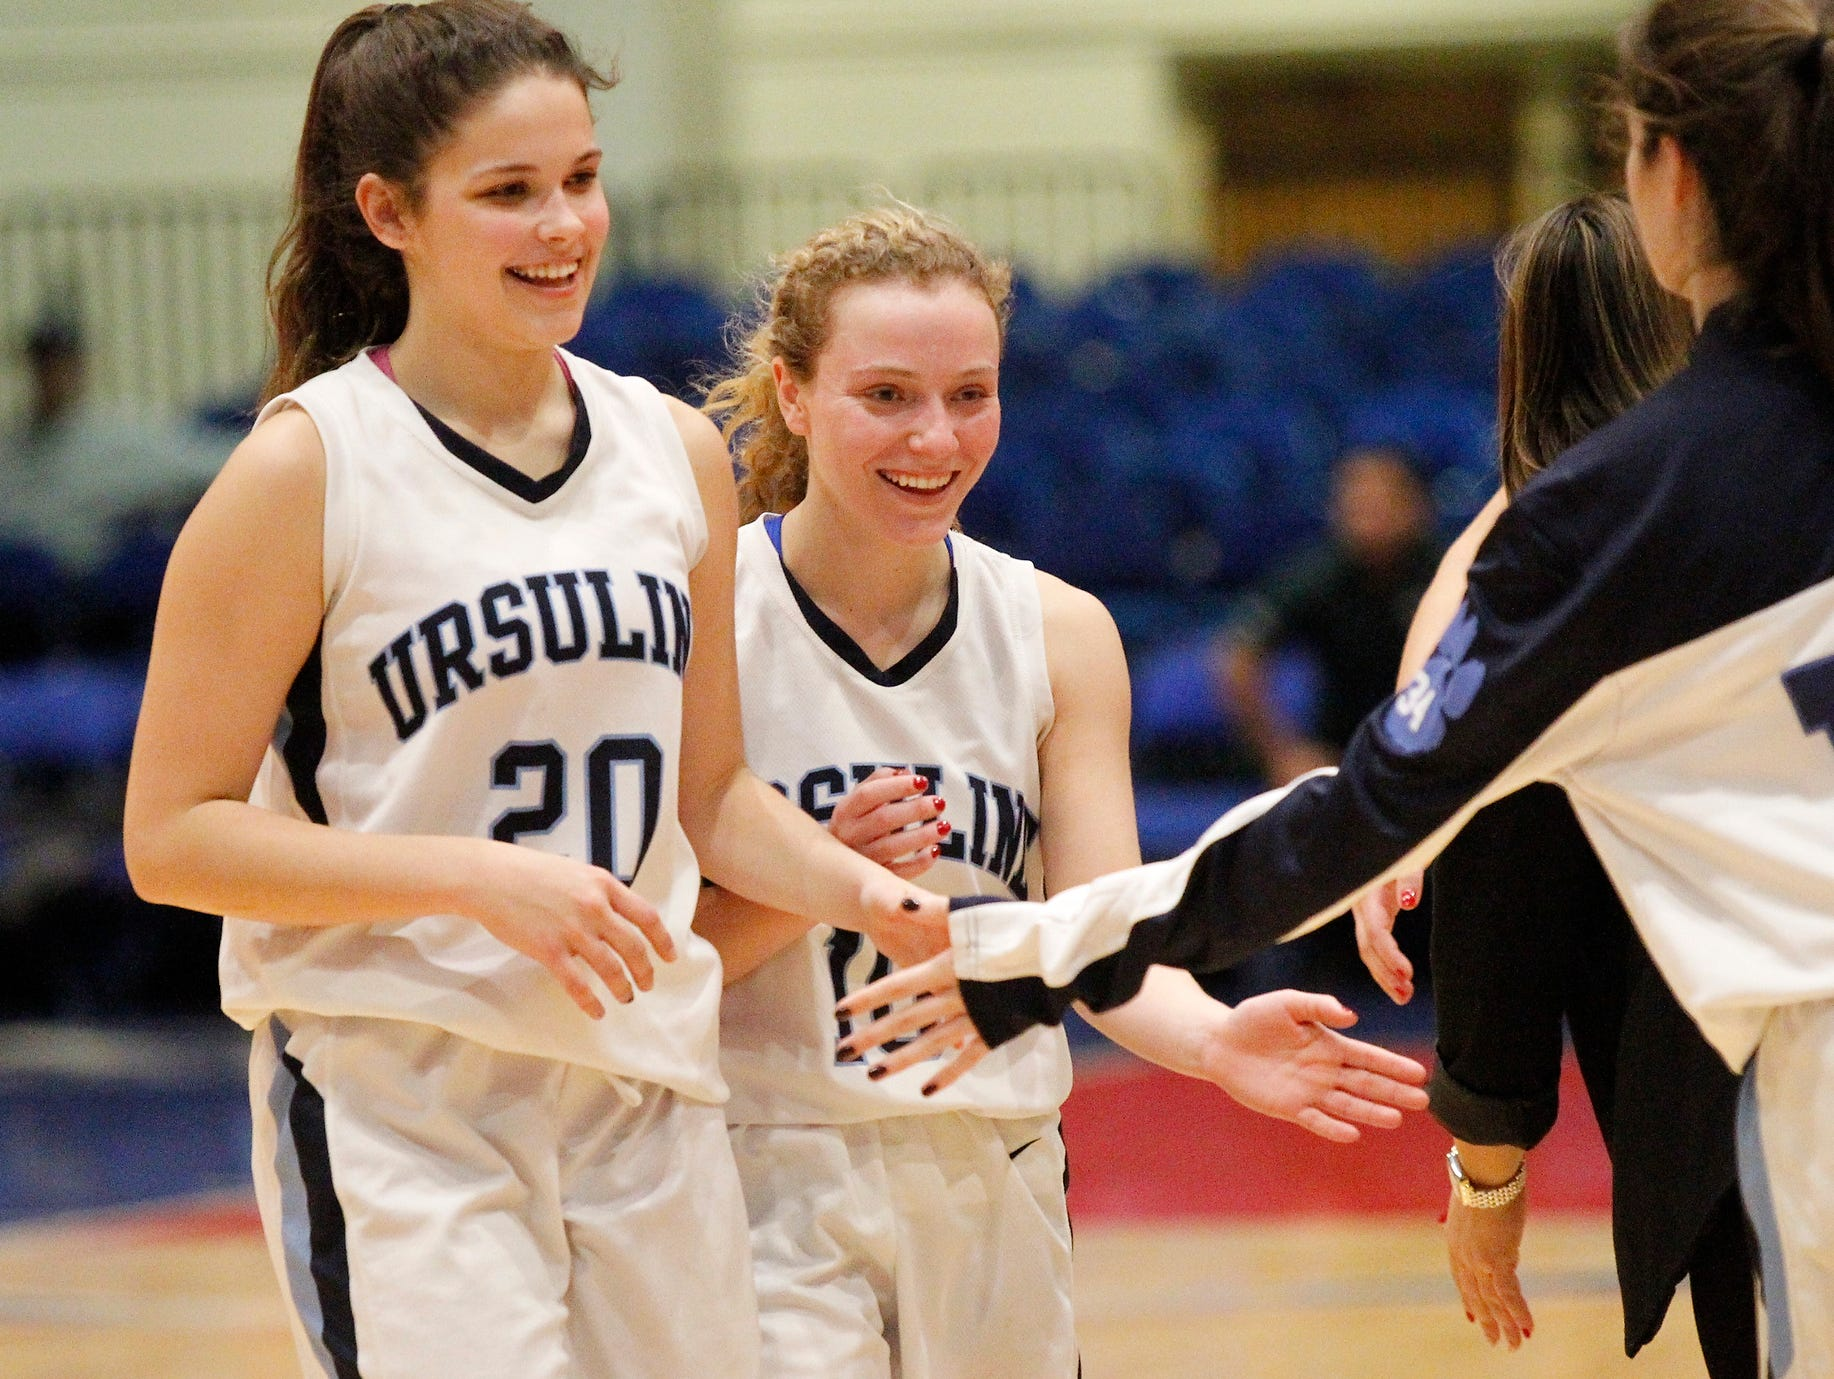 Ursuline defeats Monroe-Woodbury 47-40 in overtime during the Slam Dunk Tournament consolation game at the Westchester County Center on Tuesday, Dec. 29, 2015.